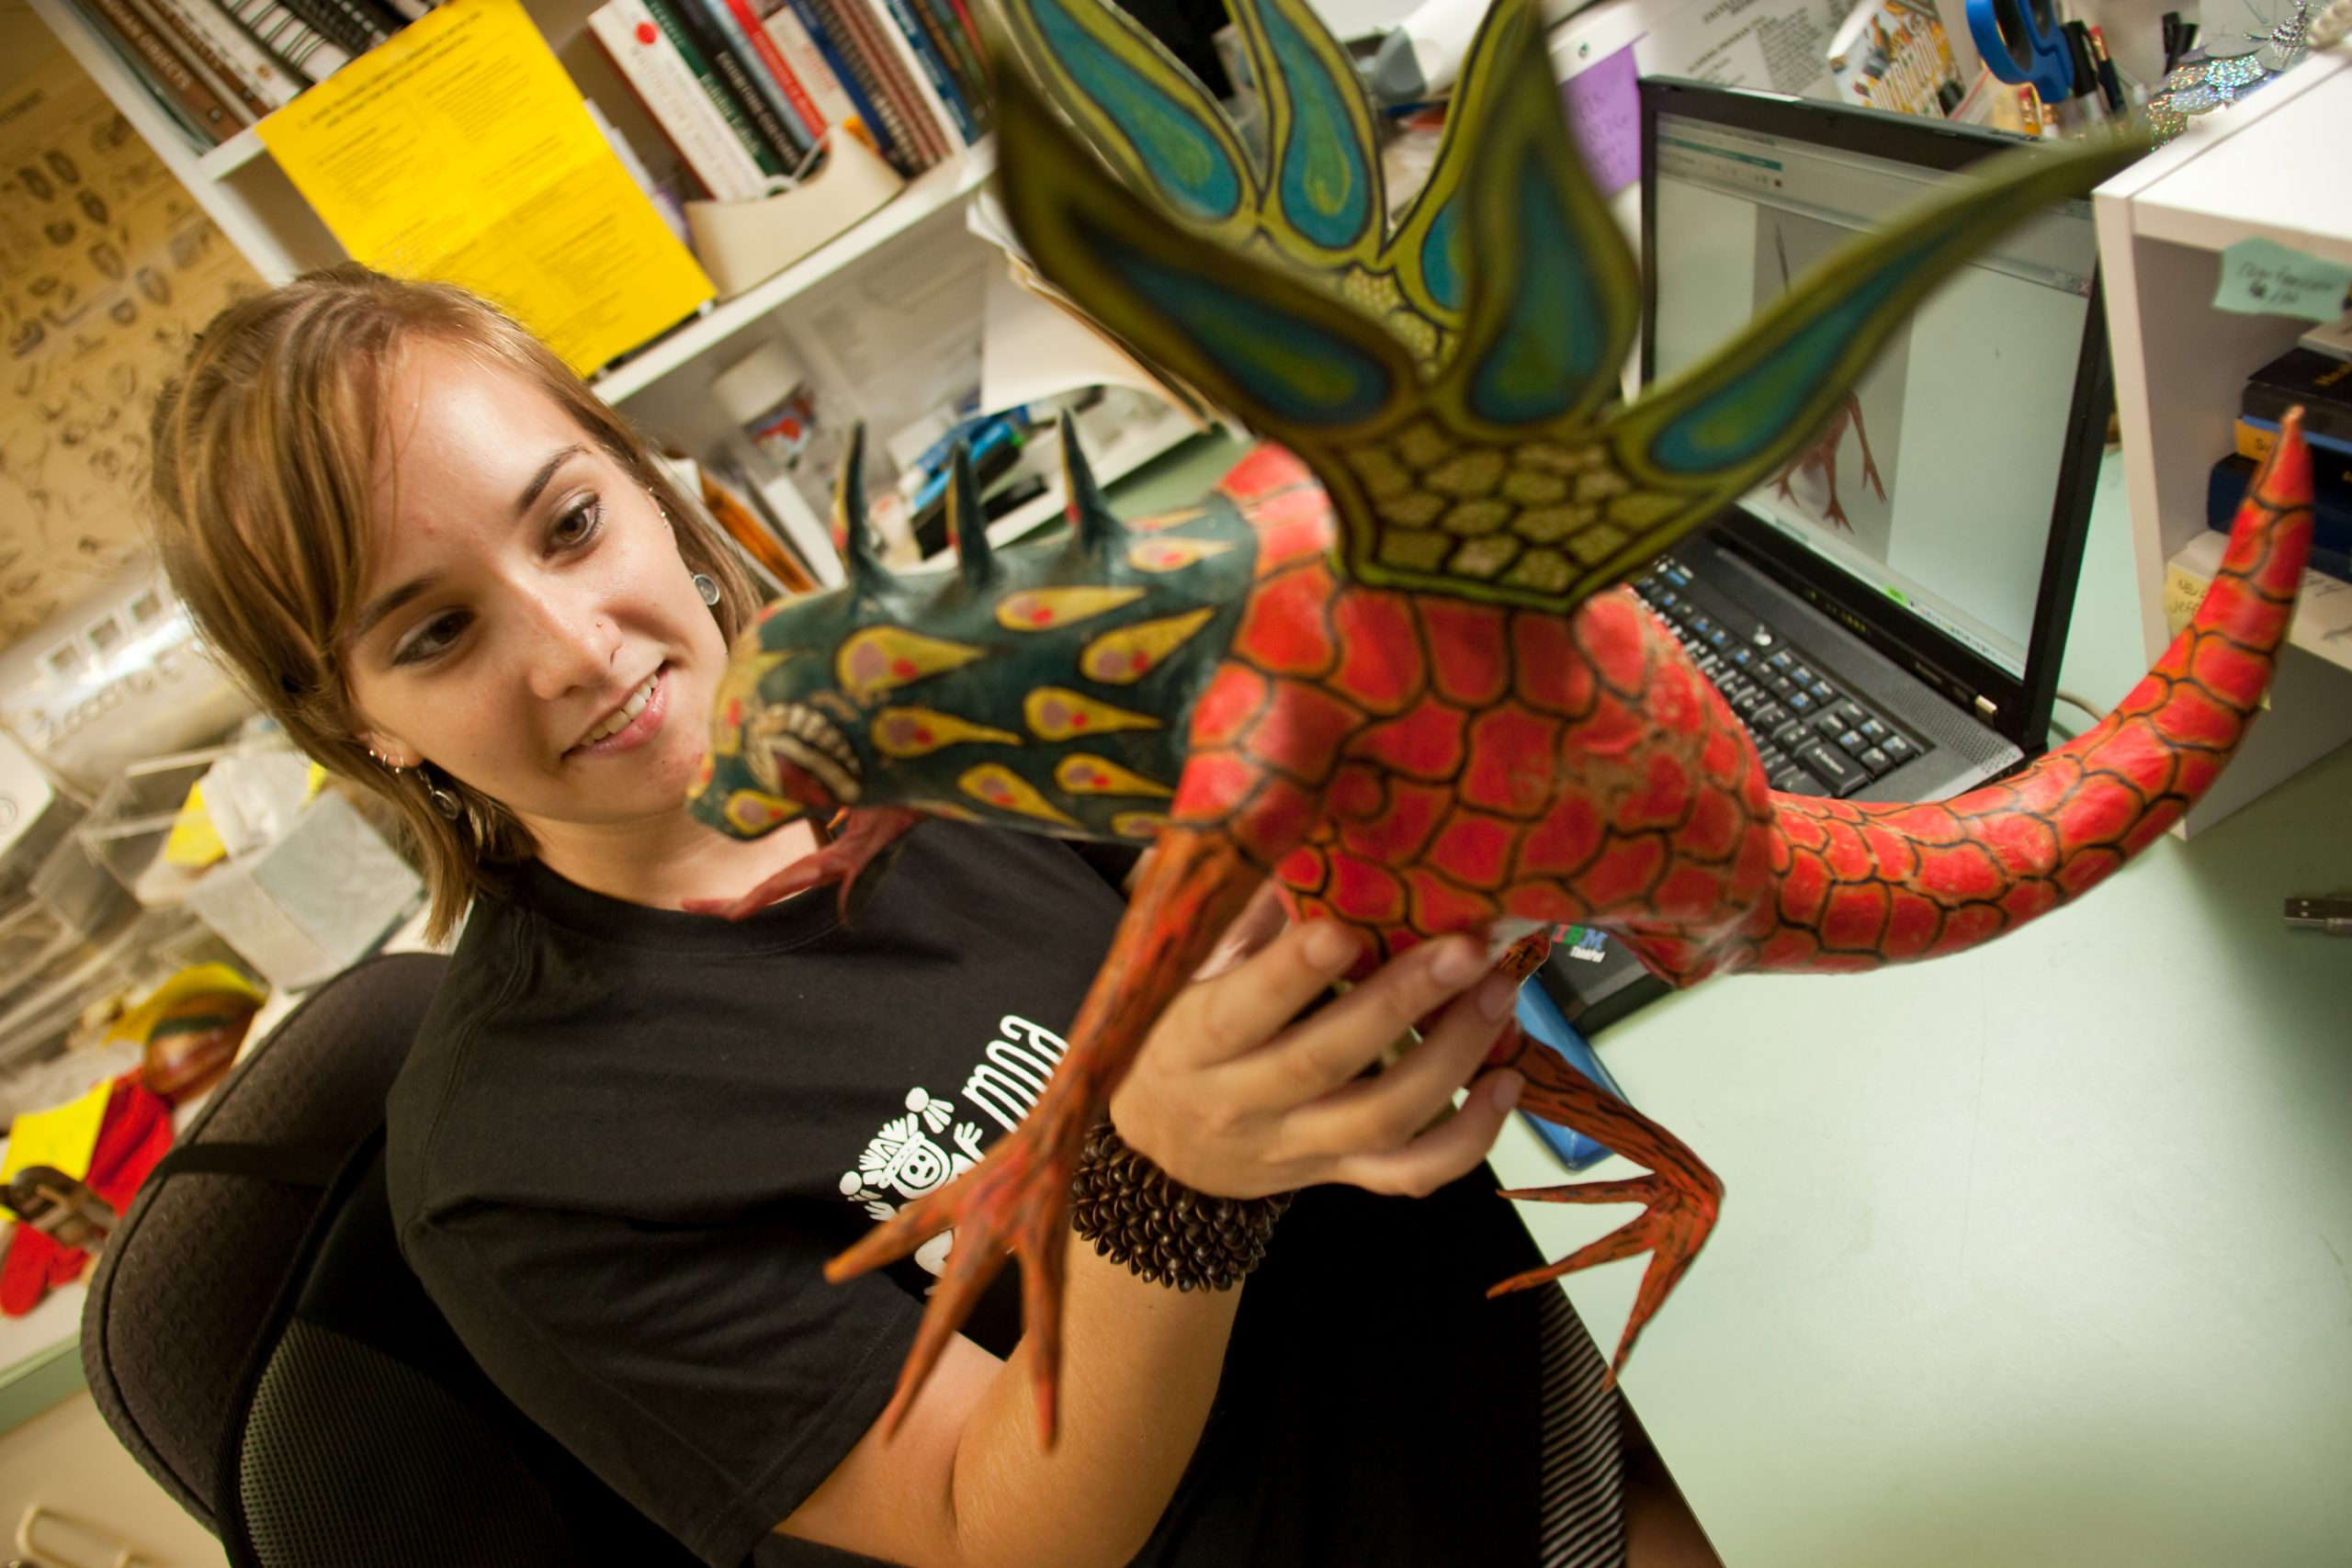 WFu student handles MOA objects